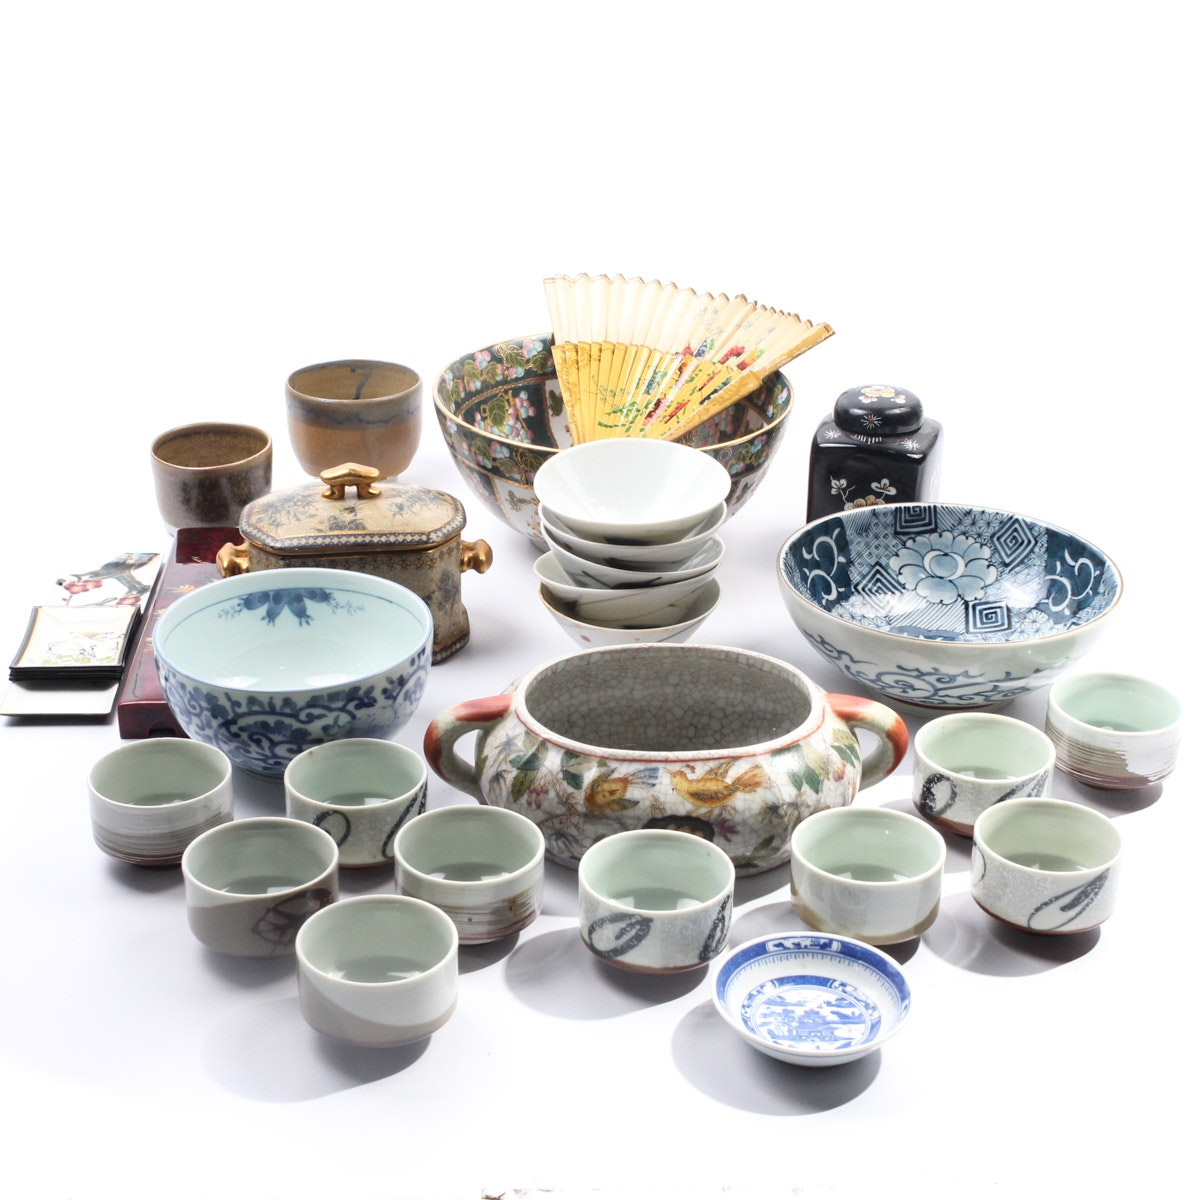 Collection of Asian Inspired Ceramics